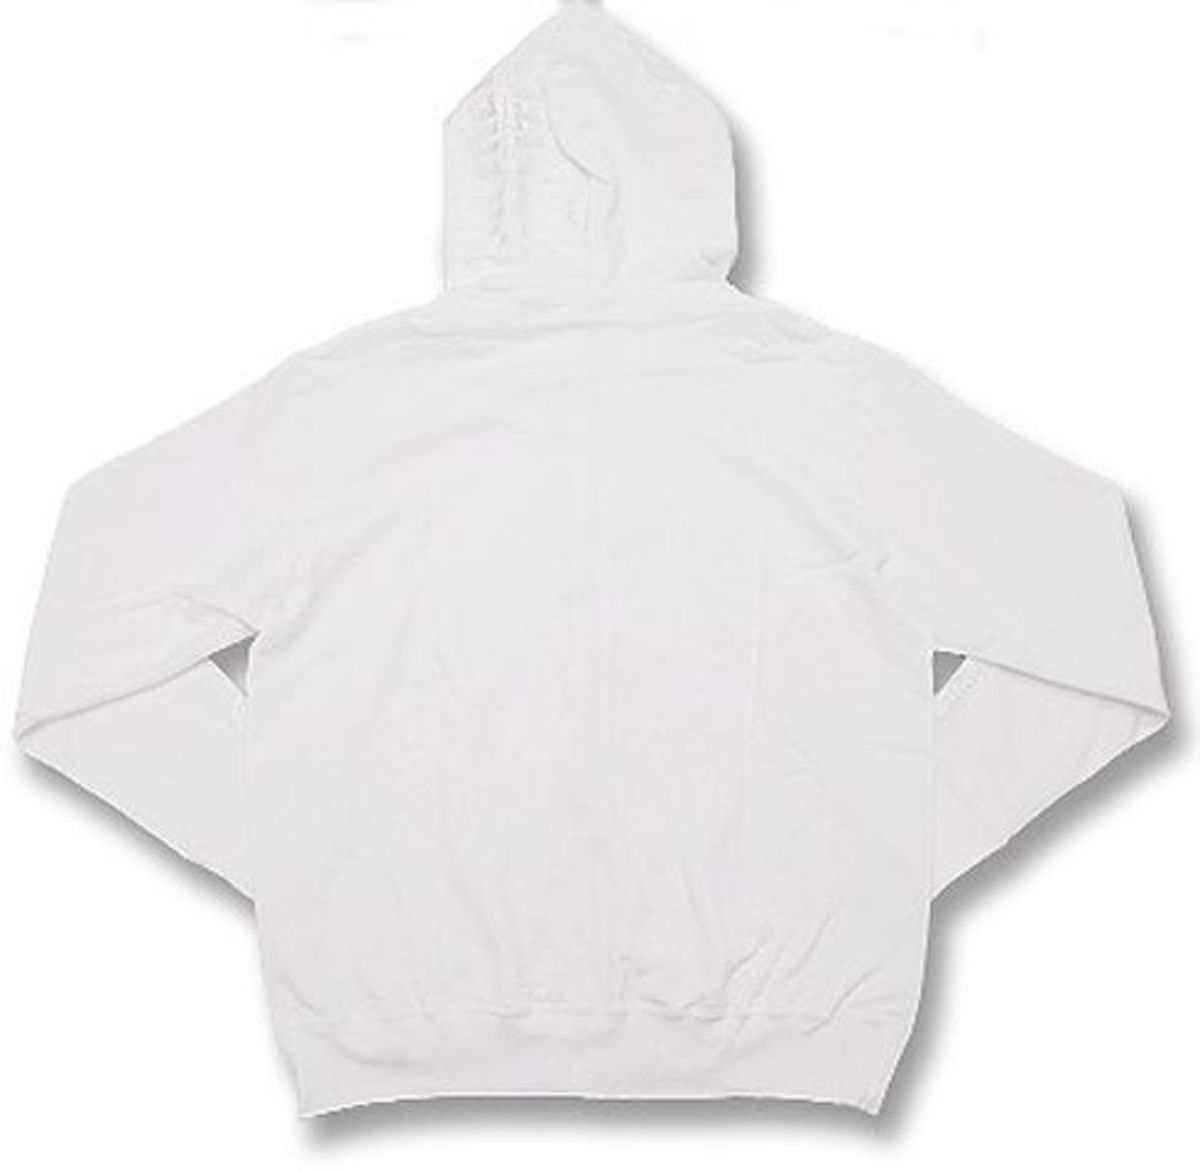 A Bathing Ape (BAPE)  (BAPE) - White Label Tiger Hoodie